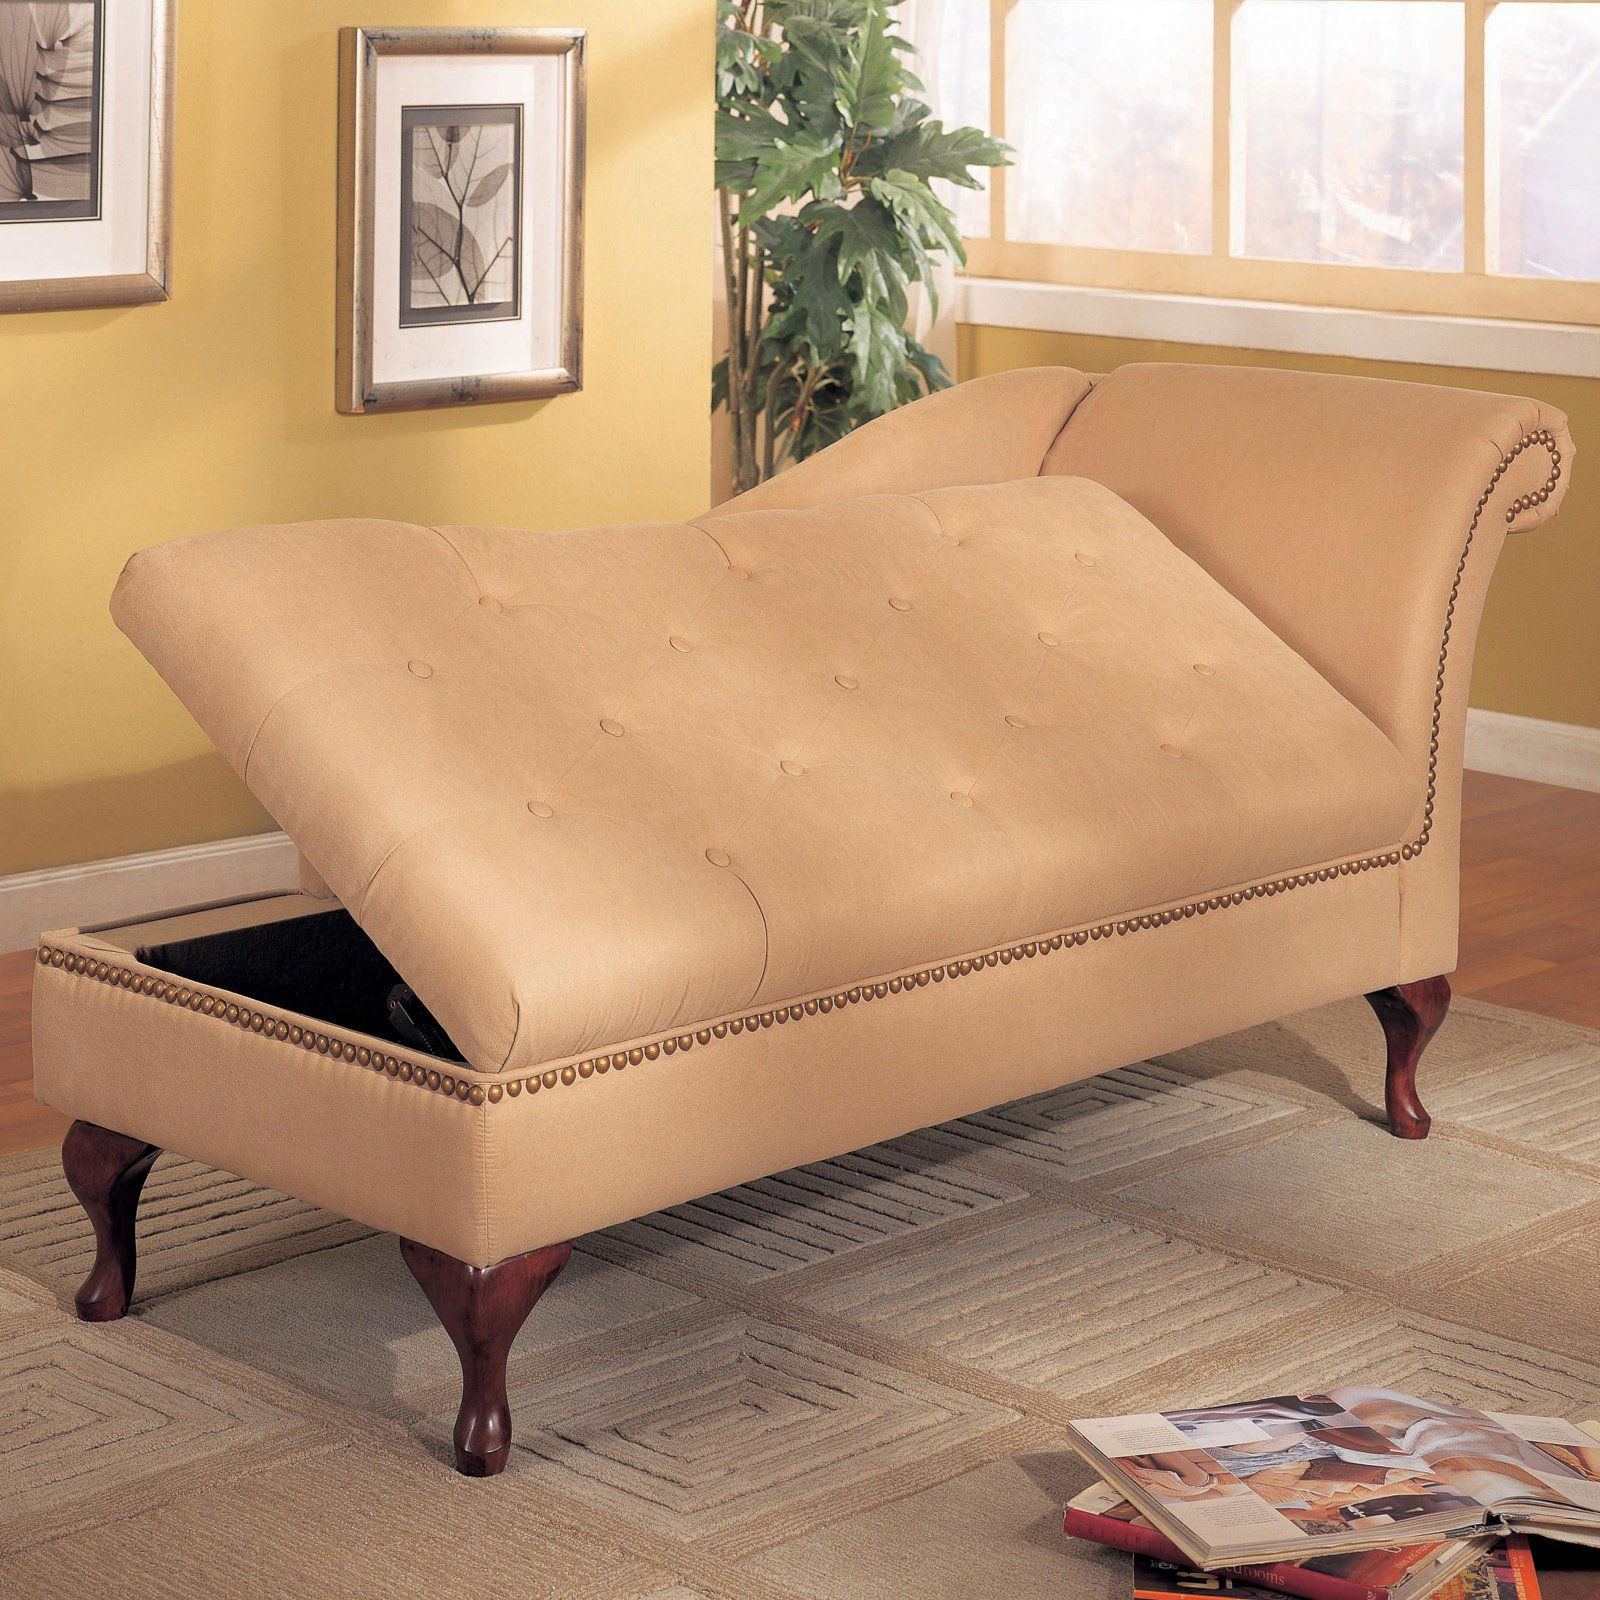 Indoor Chaise › Indoor Chaise Lounge With Storage Chaise Lounges